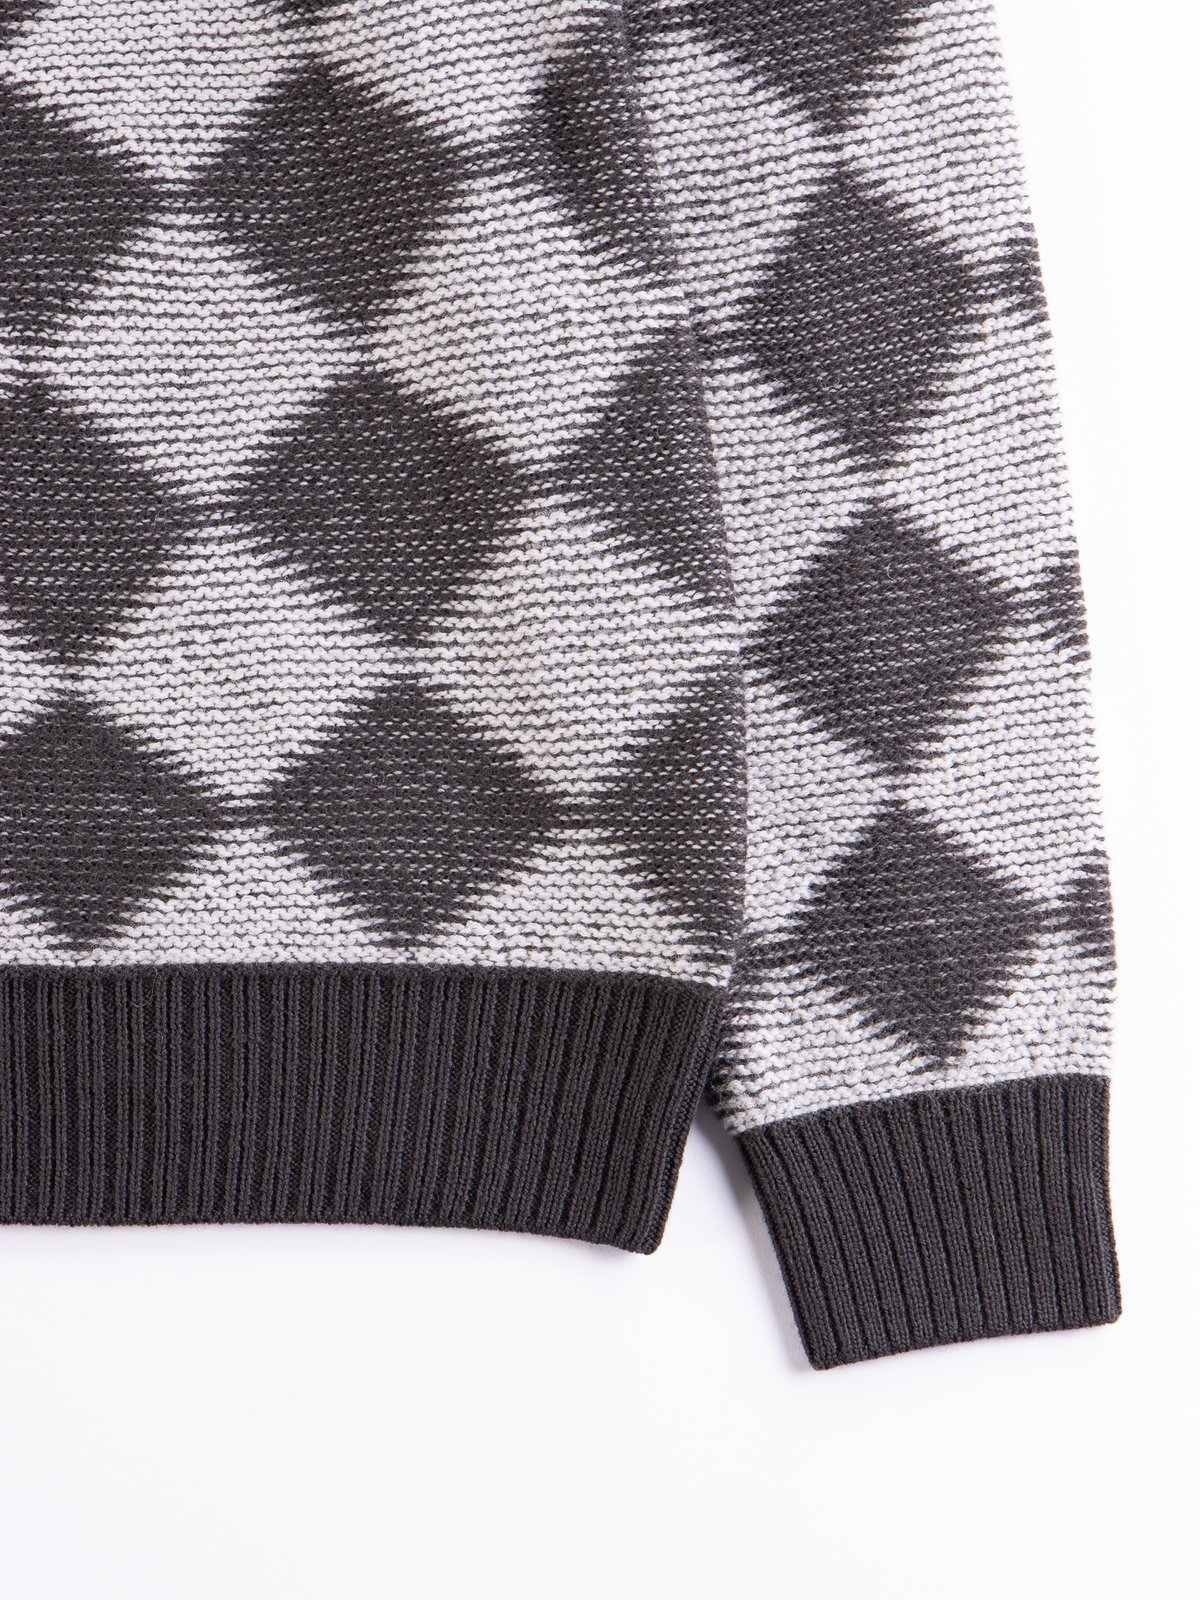 Charcoal Checkered V Neck Cardigan - Image 4